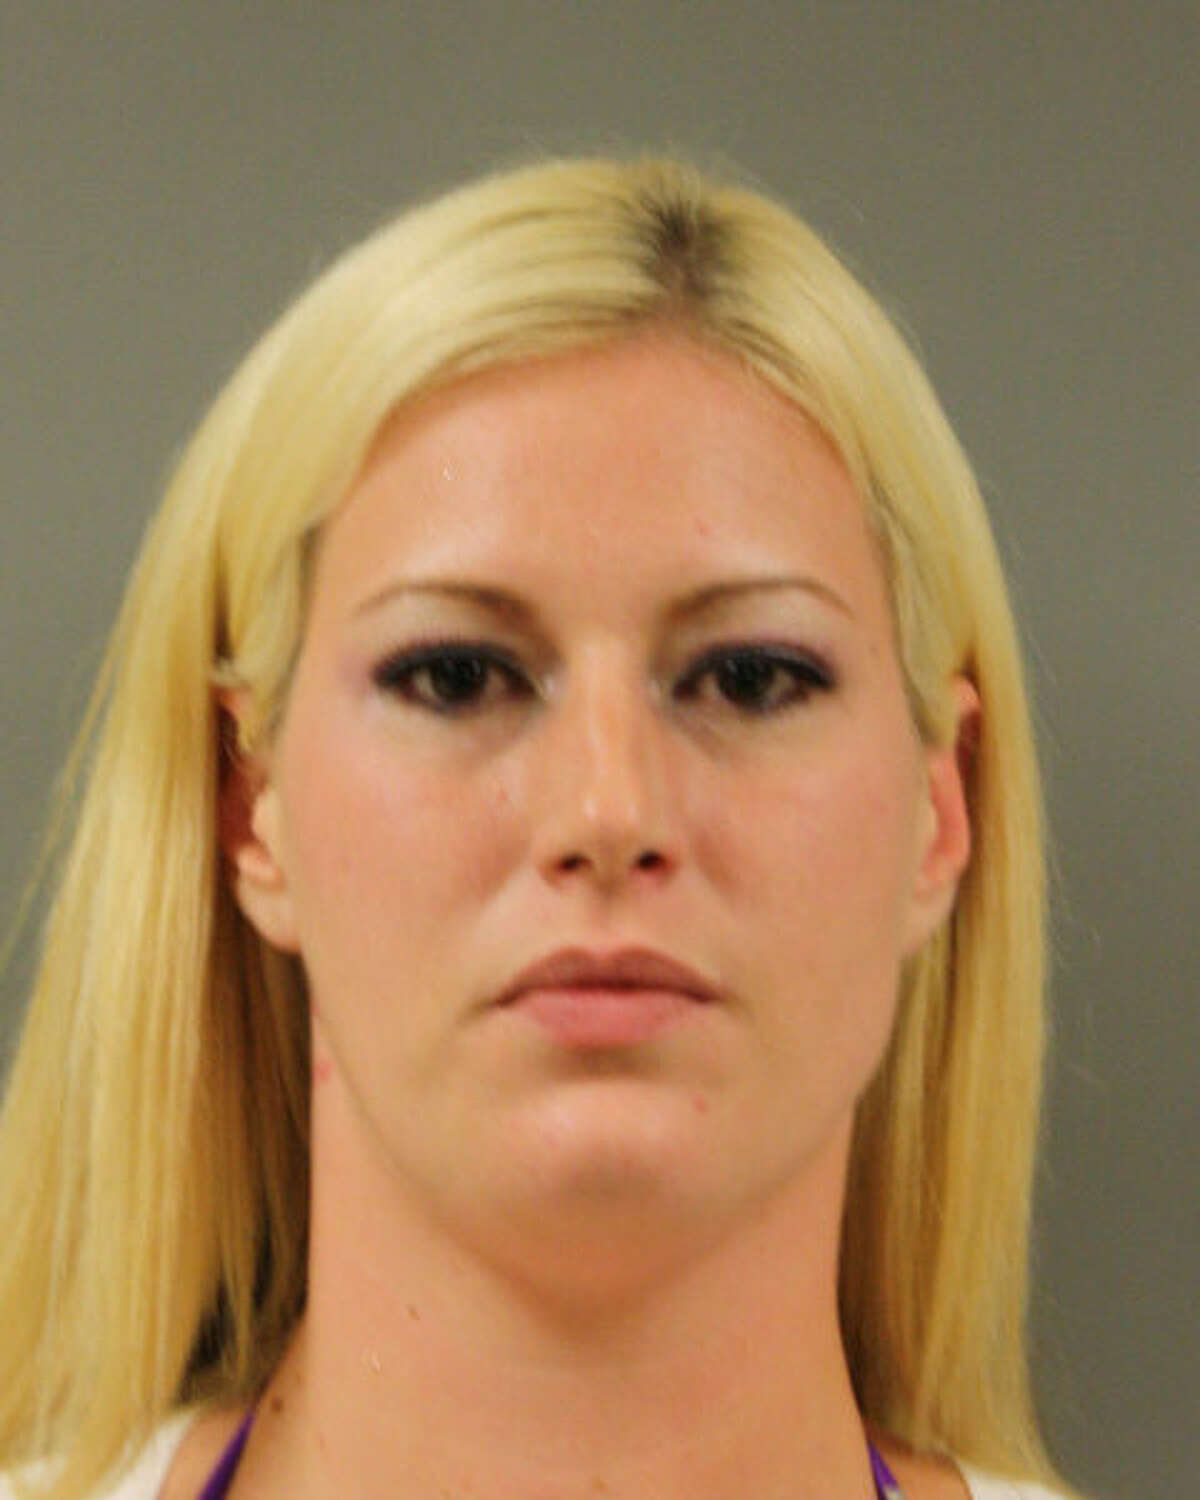 Elizabeth Evans has been arrested as part of an undercover operation by Harris County Sheriff's Department at a northwest Harris County strip club.